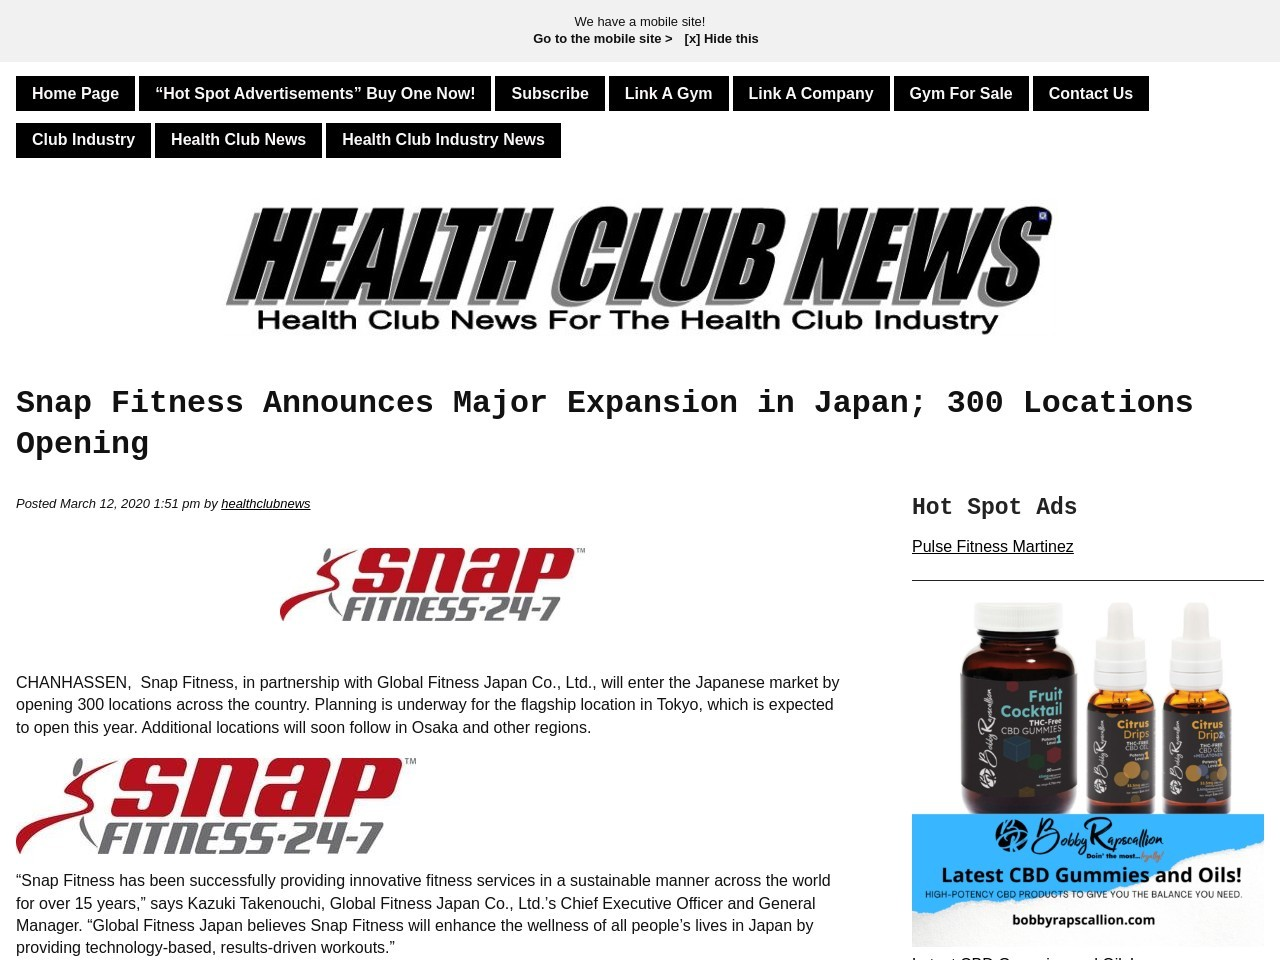 Snap Fitness Announces Major Expansion in Japan; 300 Locations Opening